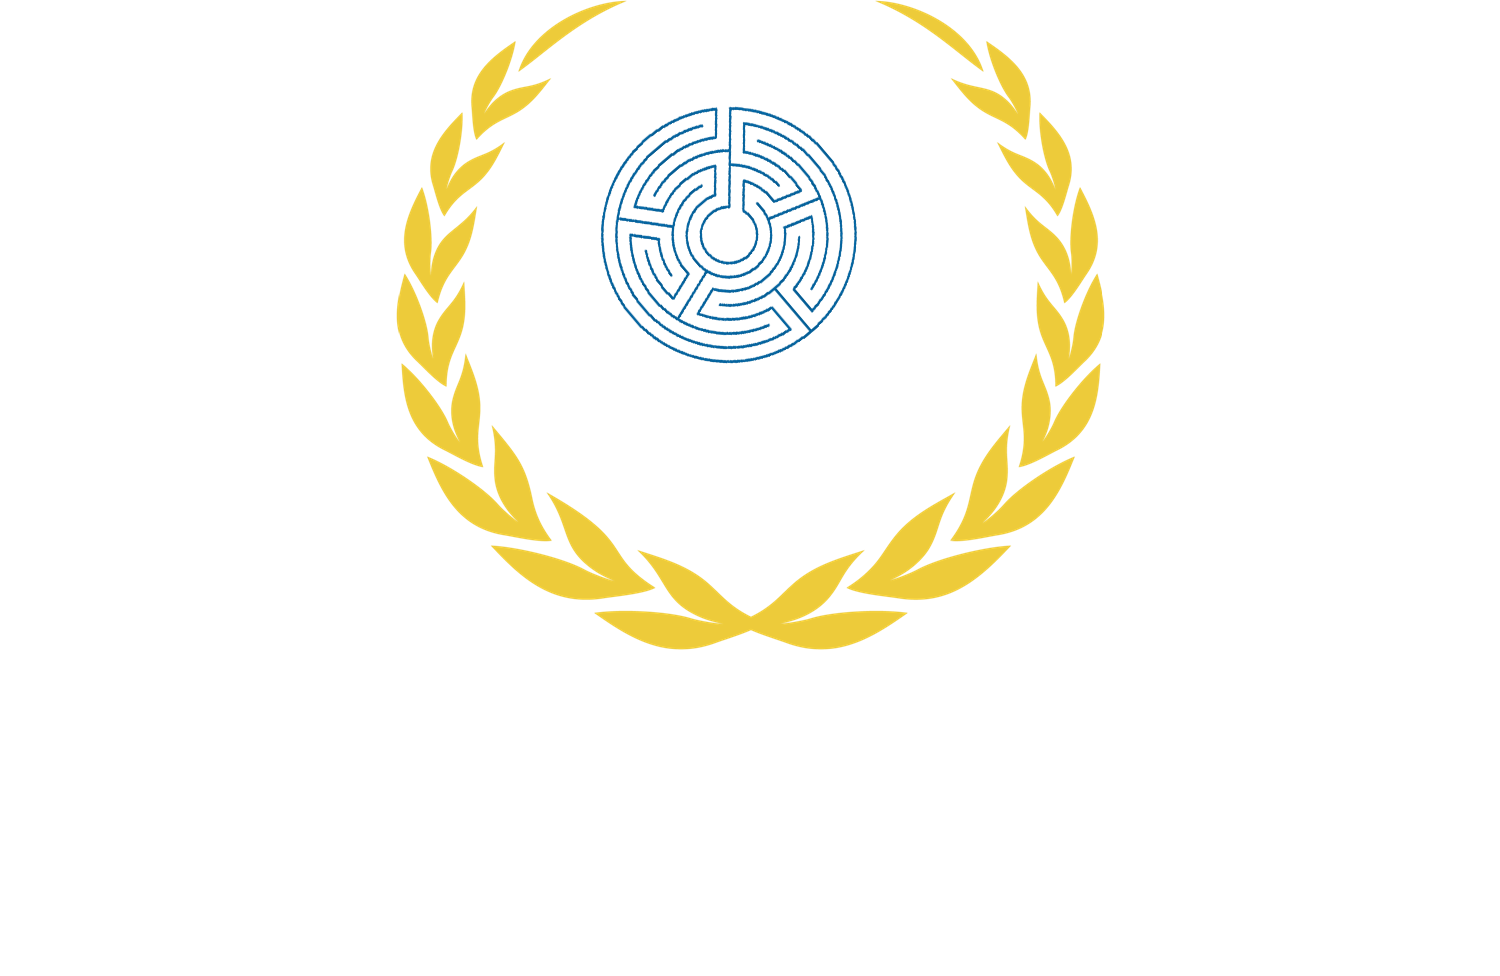 Academy of Success and Leadership